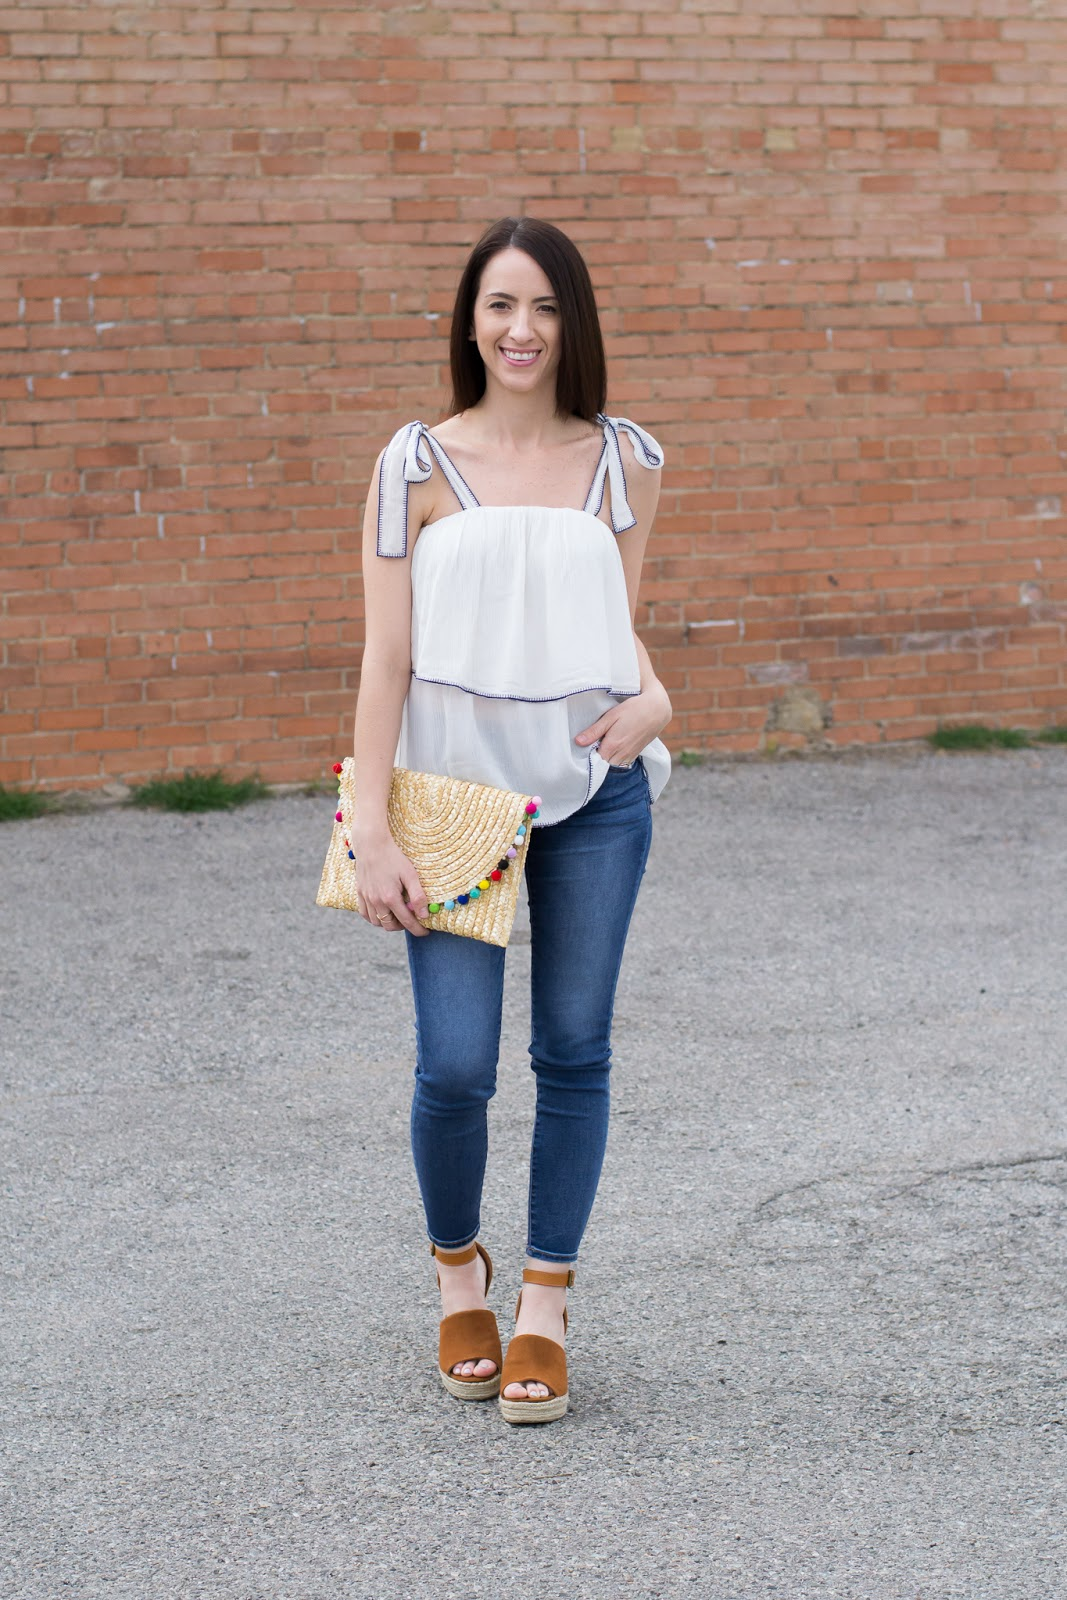 White ruffle top with bow ties and straw clutch